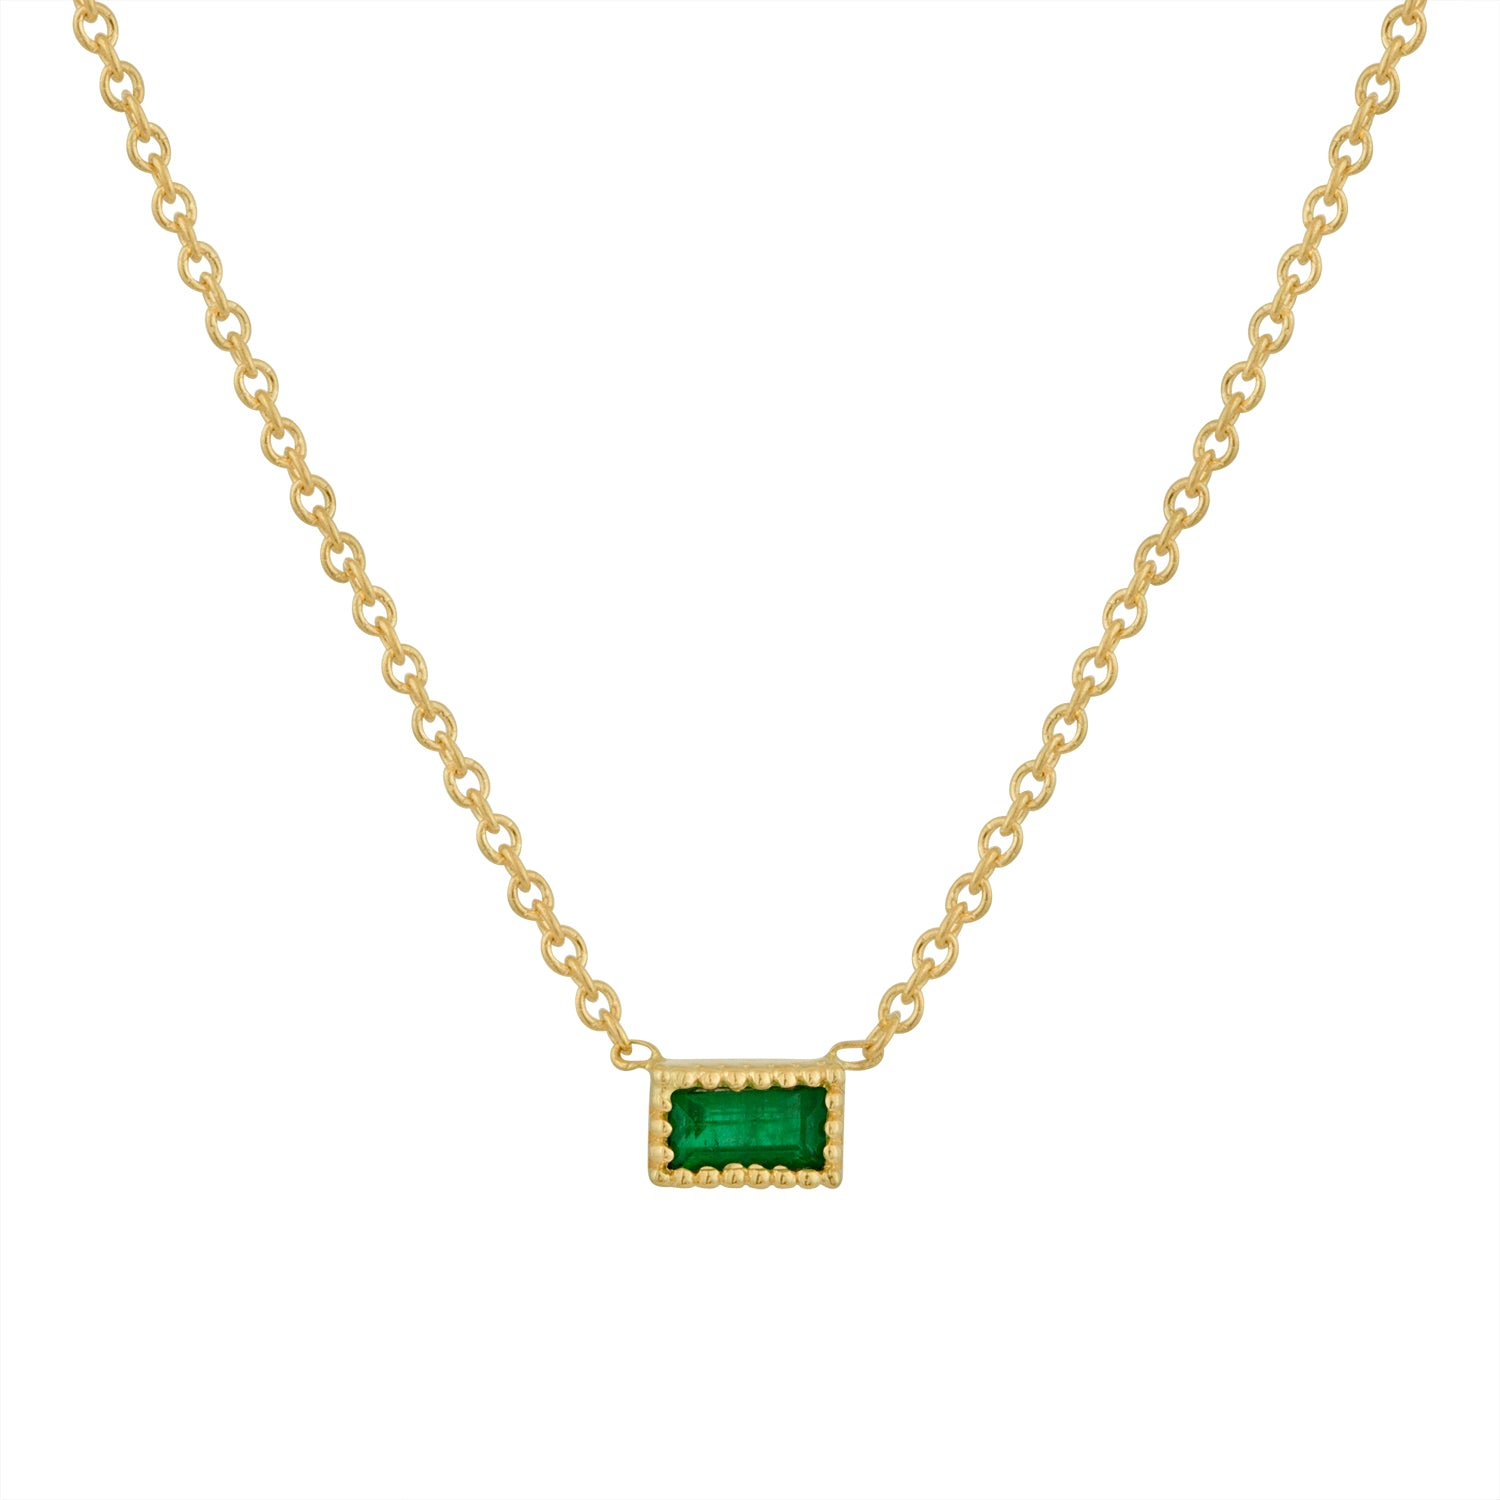 Small single emerald baguette necklace